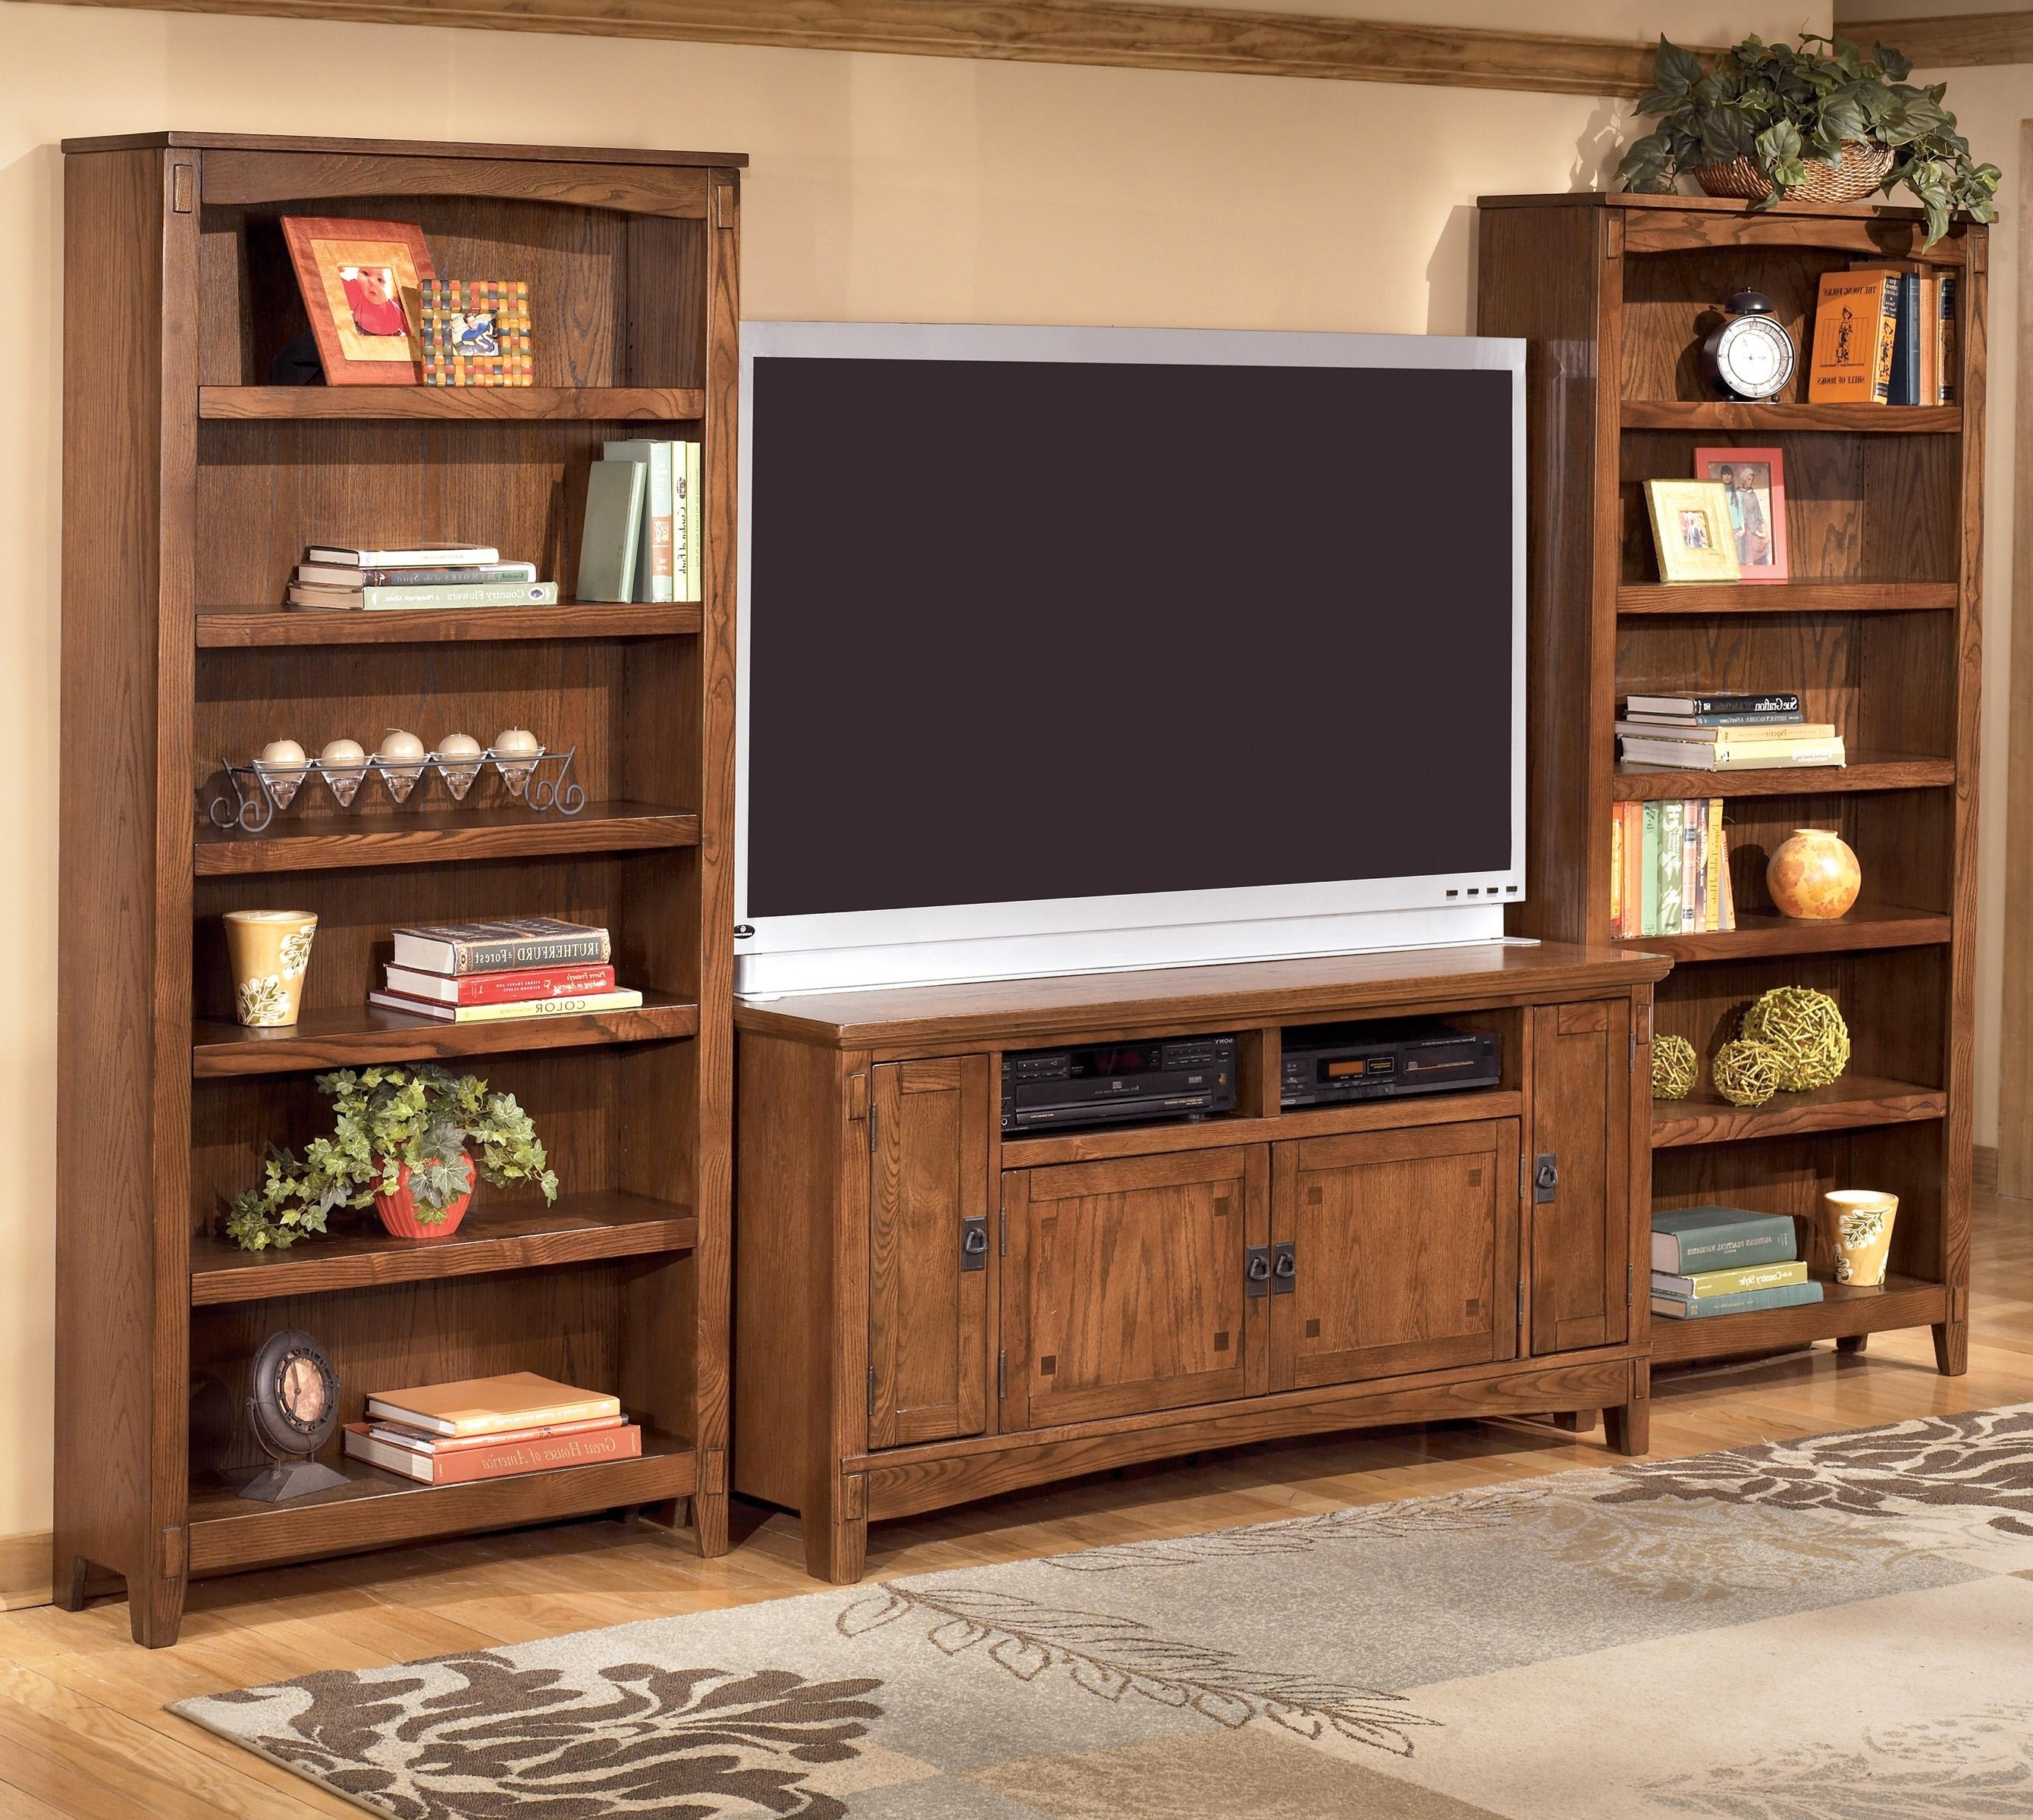 Wolf Within Popular Bookcases And Tv Unit (View 15 of 15)